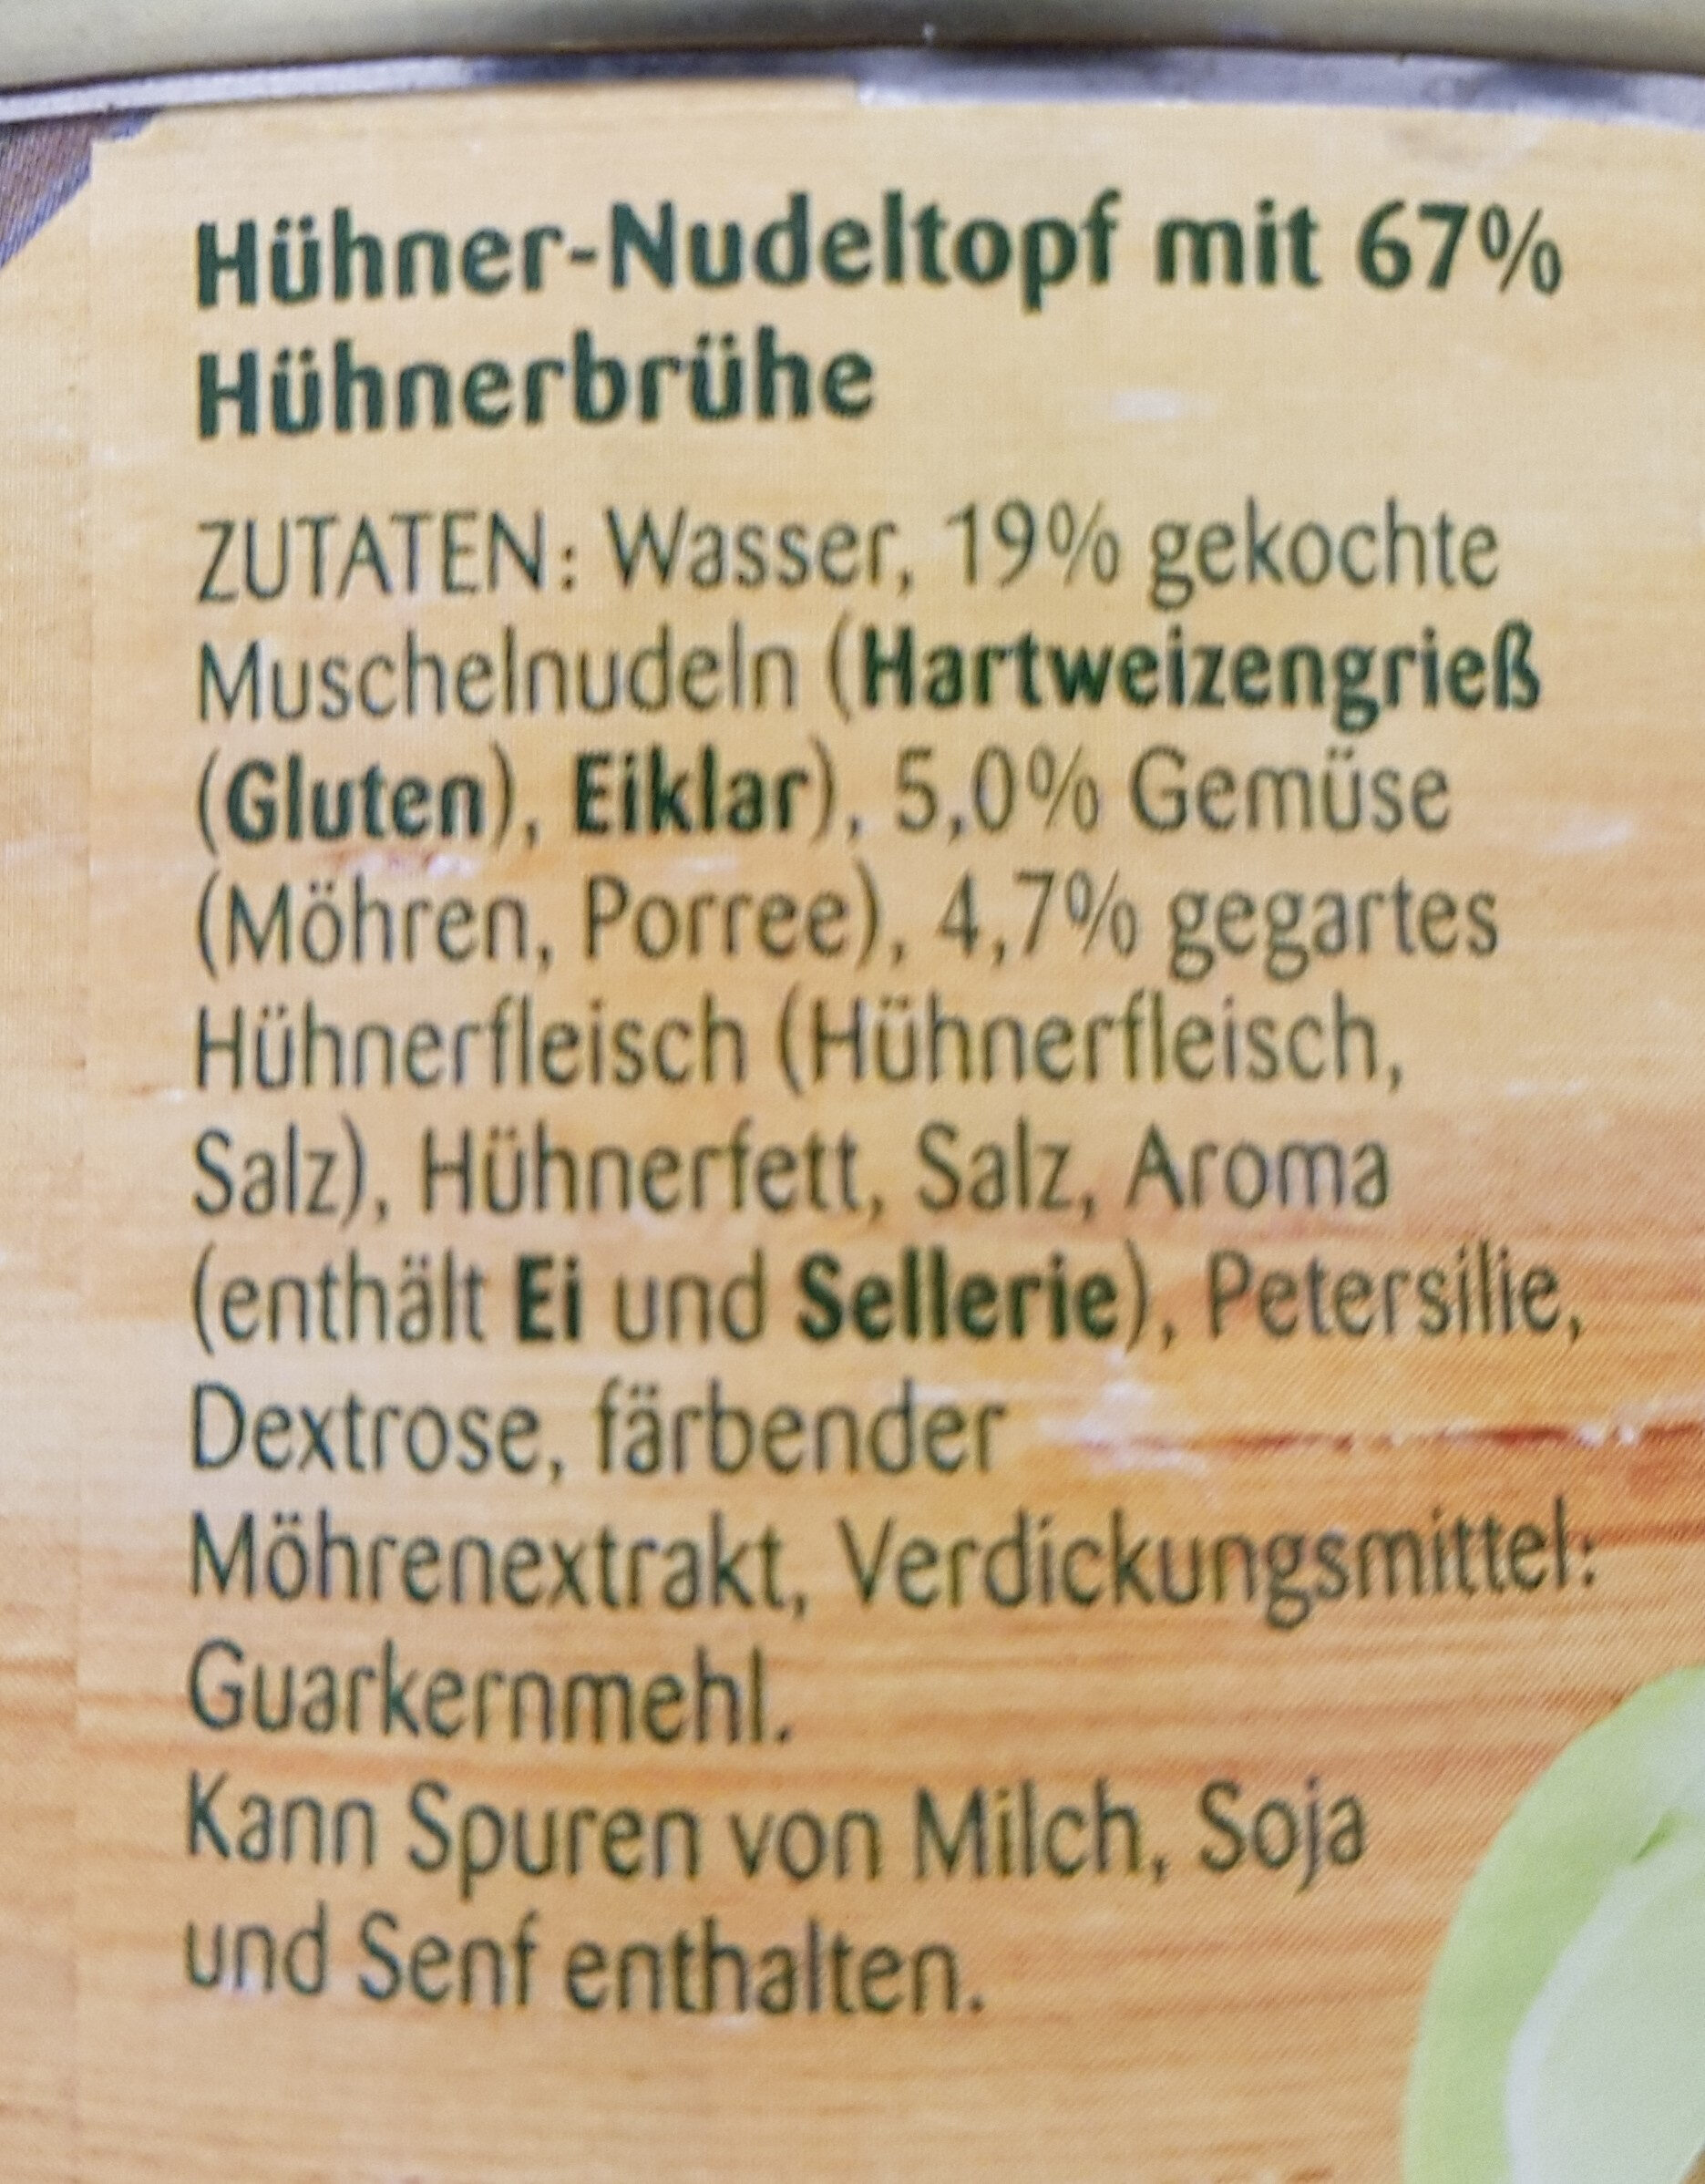 Hühner Nudel-Topf - Ingredients